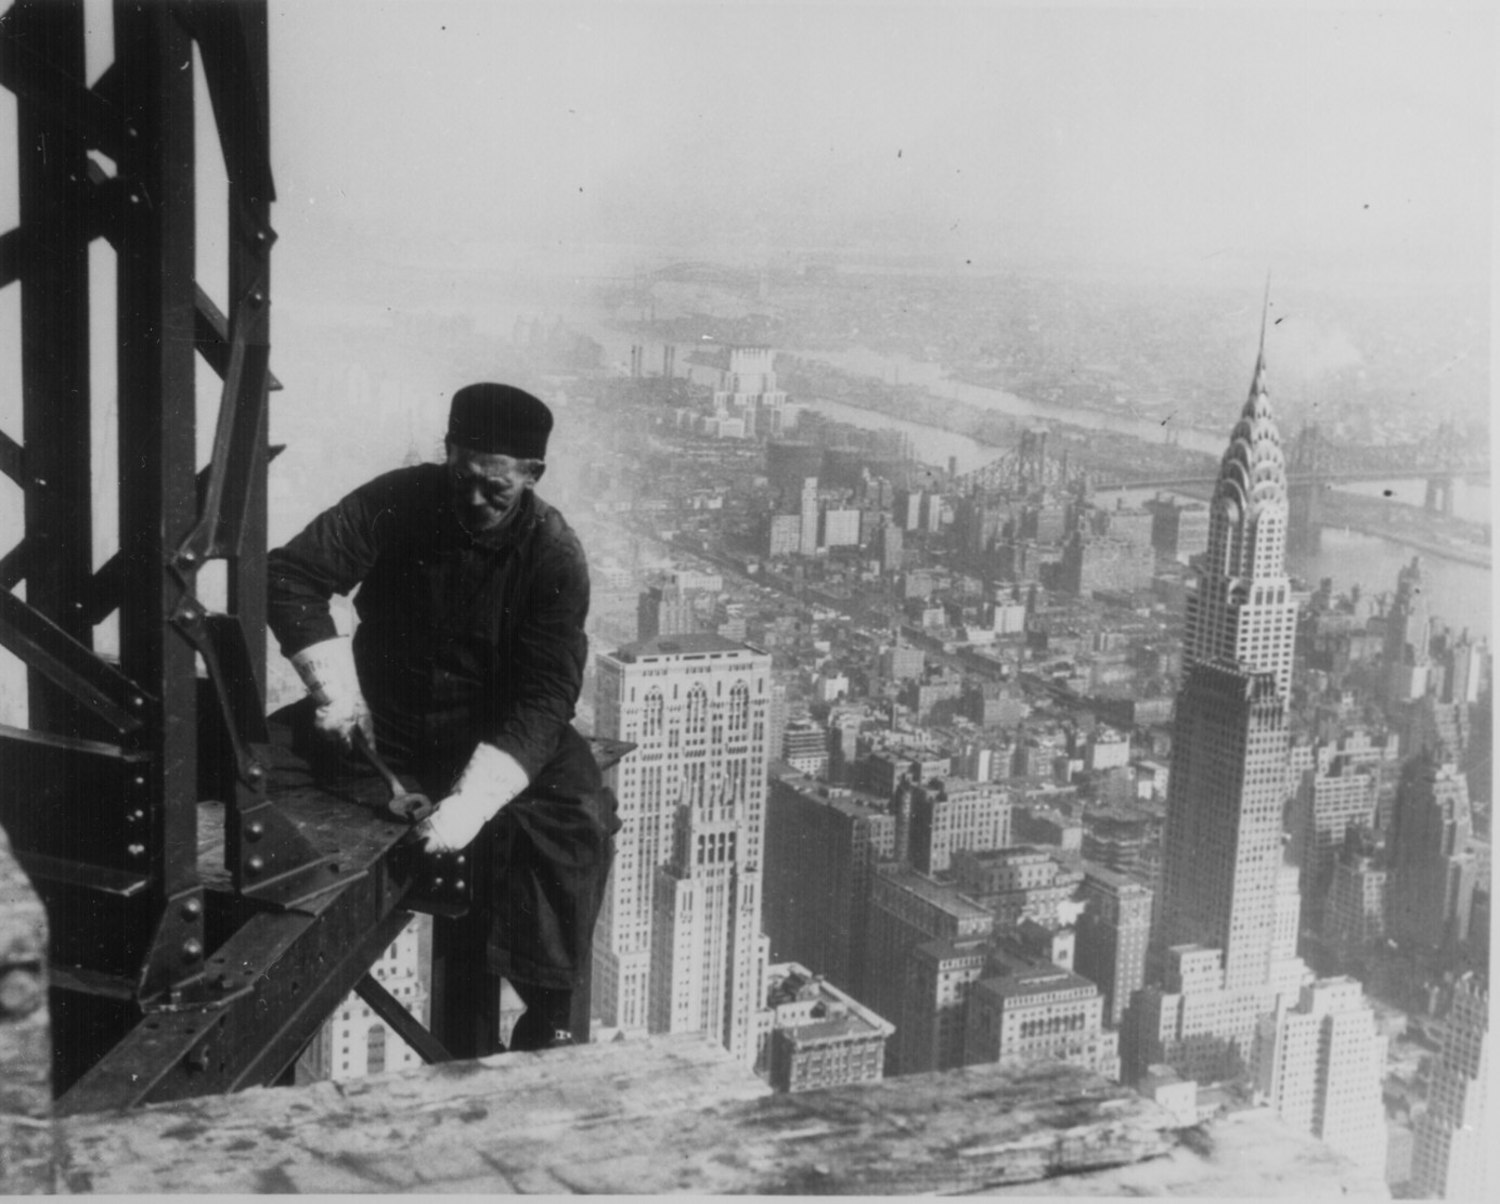 Workman, perched on the end of a beam, bolting together the framework of the Empire State Building, New York City, 1930. Photograph by Lewis Hine